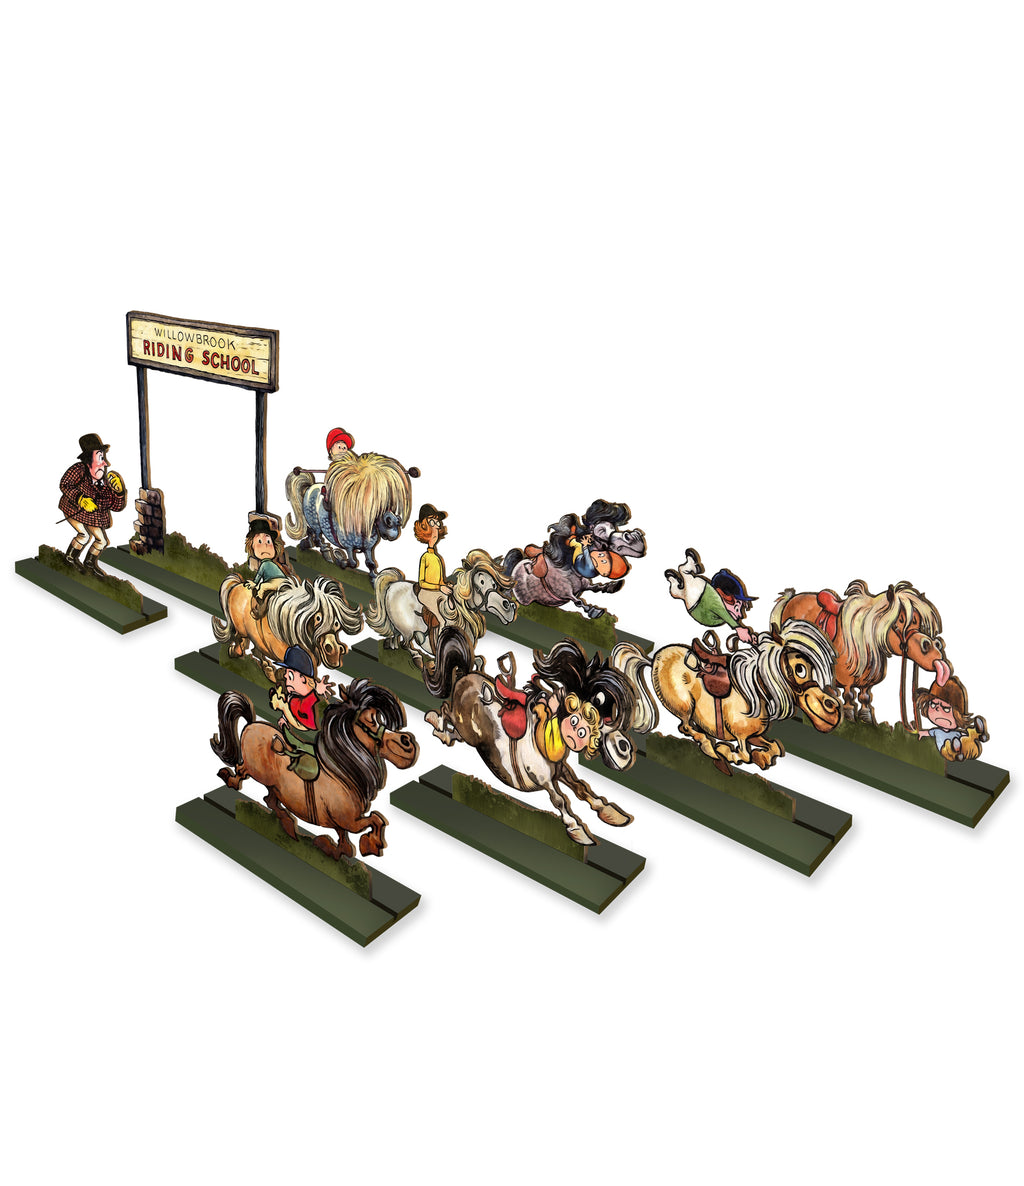 Riding School ( Norman Thelwell ) - Ornamental Wood Cut